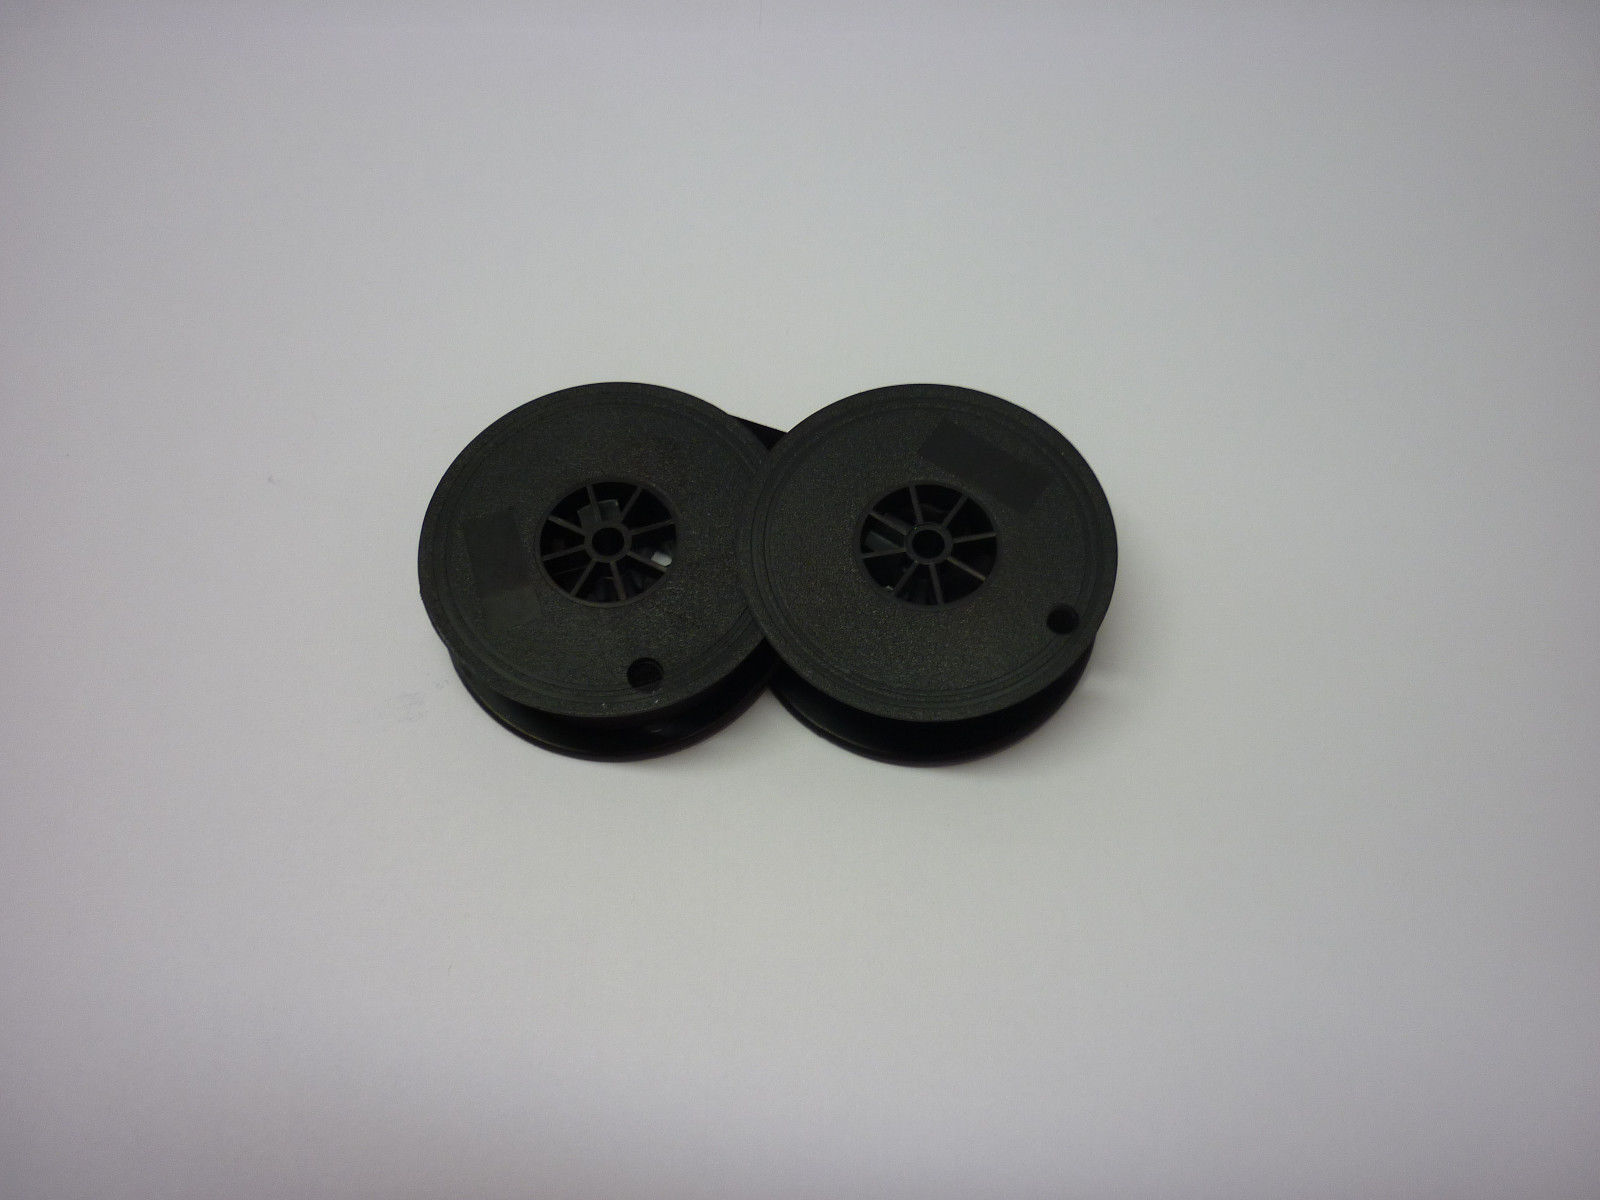 Olympia Model B12 Typewriter Ribbon Black Twin Spool